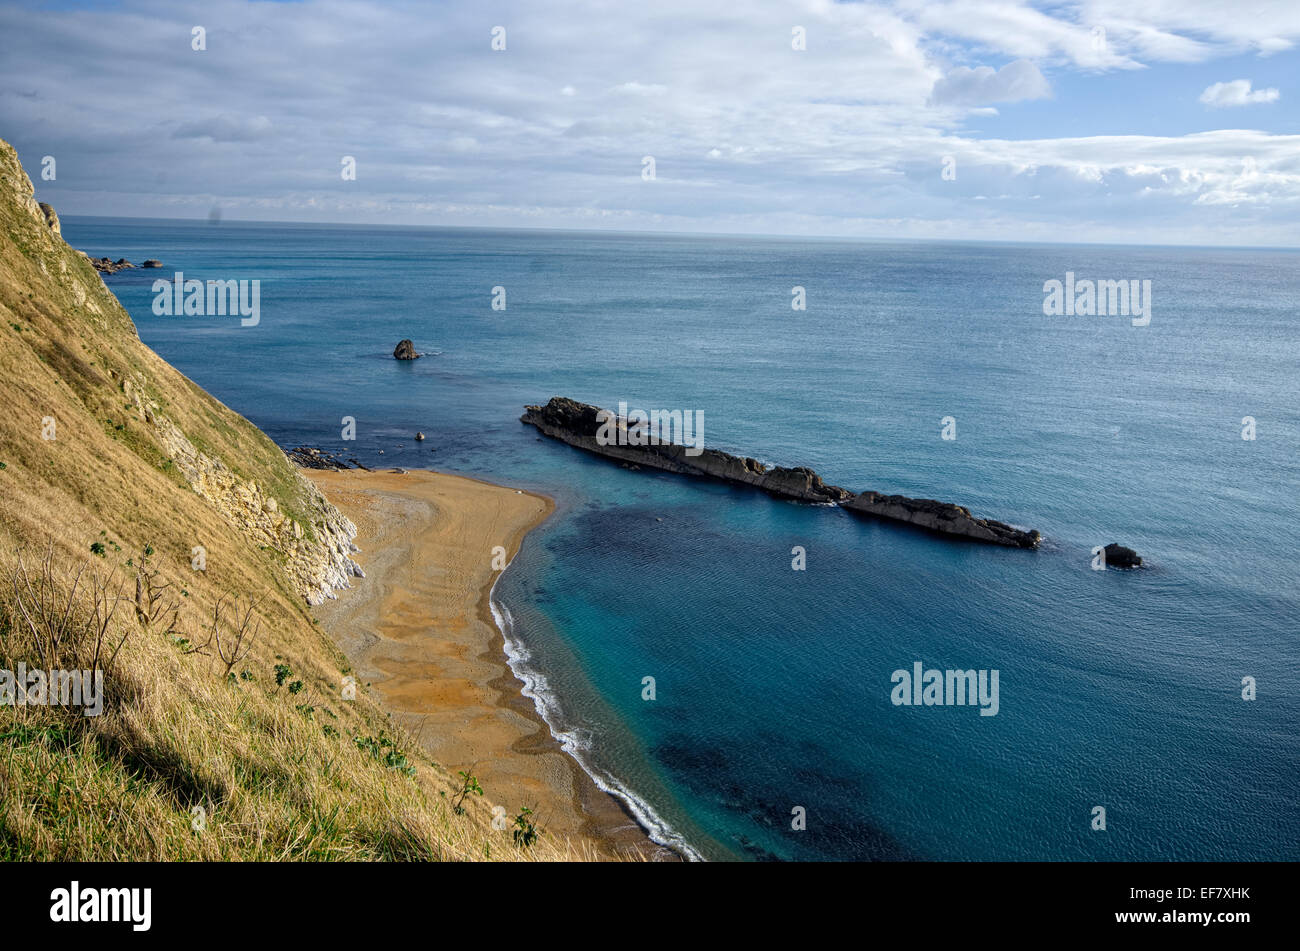 Durdle Door Jurassic Coast Dorset & Durdle Door Jurassic Coast Dorset Stock Photo Royalty Free ... pezcame.com